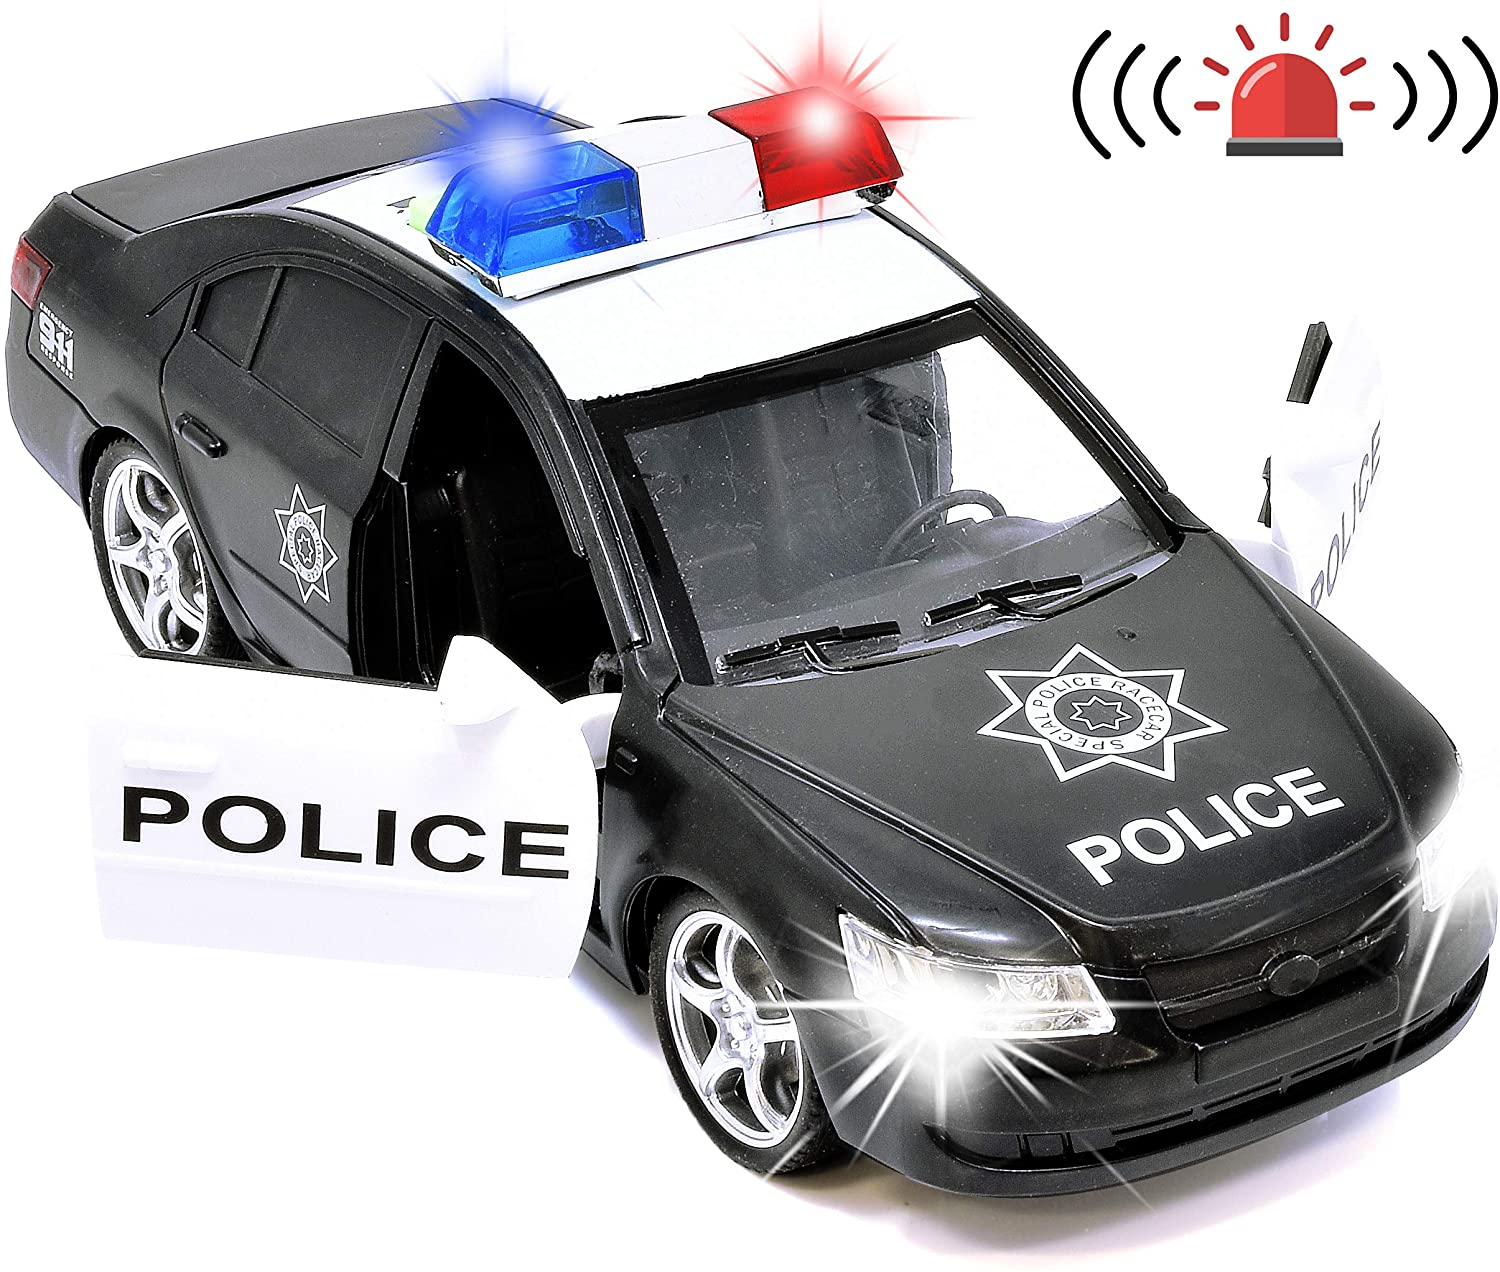 Number 1 in Gadgets Police Car Toy Friction Powered Rescue Vehicle with Lights and Siren Sounds for Boys Toddlers and Kids, Push and Go Pull Back Diecast Emergency Transport Vehicle Car